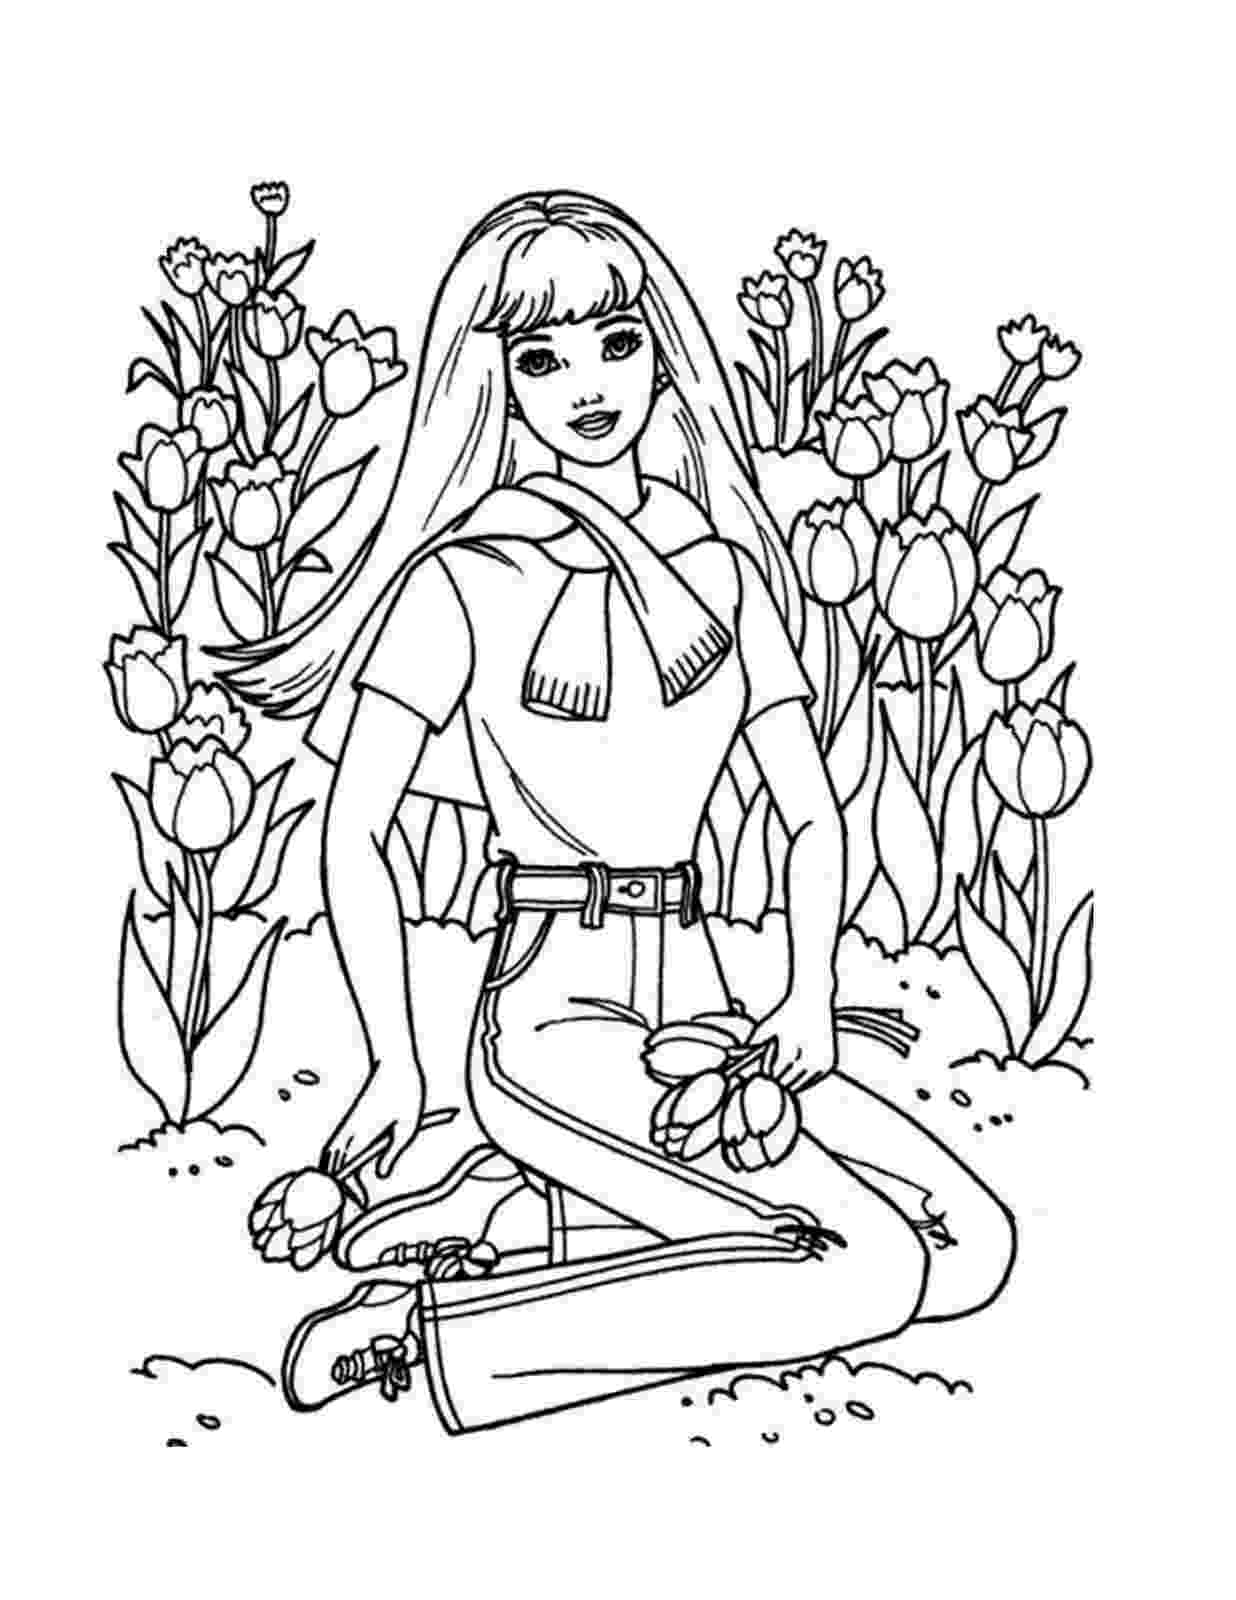 barbie free coloring pages barbie coloring pages for girls barbie coloring pages free pages barbie coloring